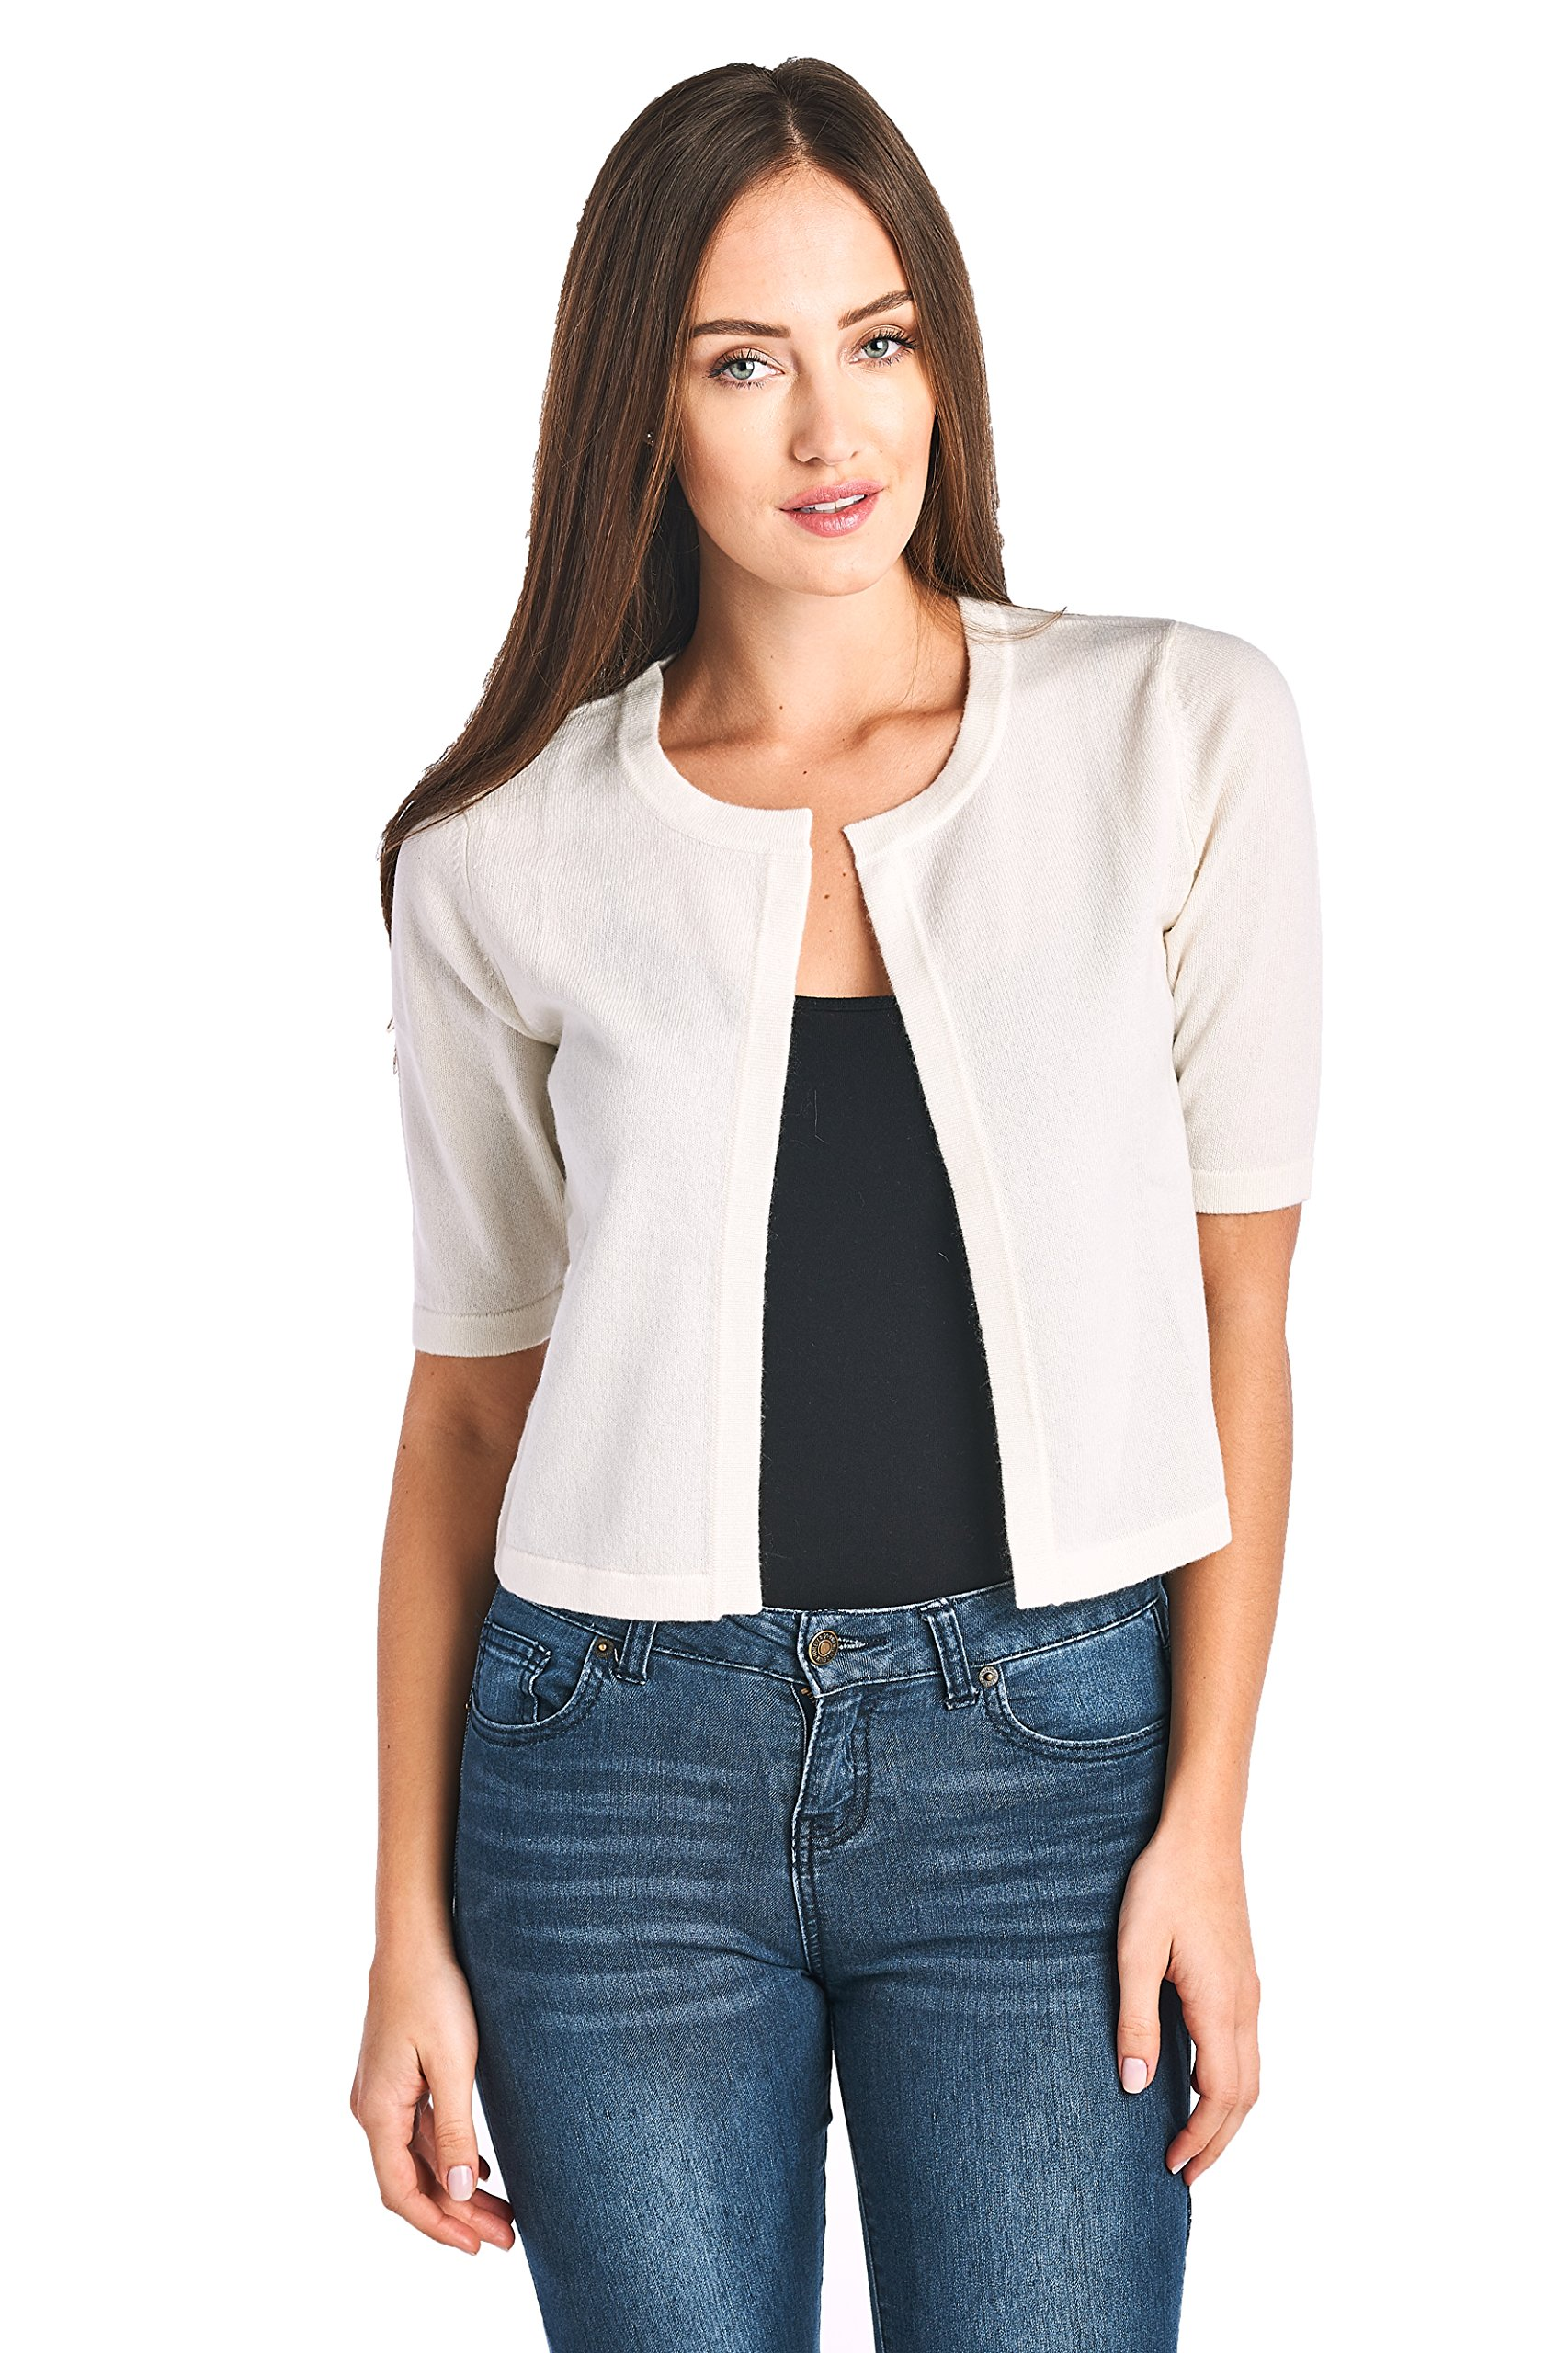 High Style Women's 100% Cashmere Short Sleeve Cropped Open Cardigan Sweater (17617, Cream, M)